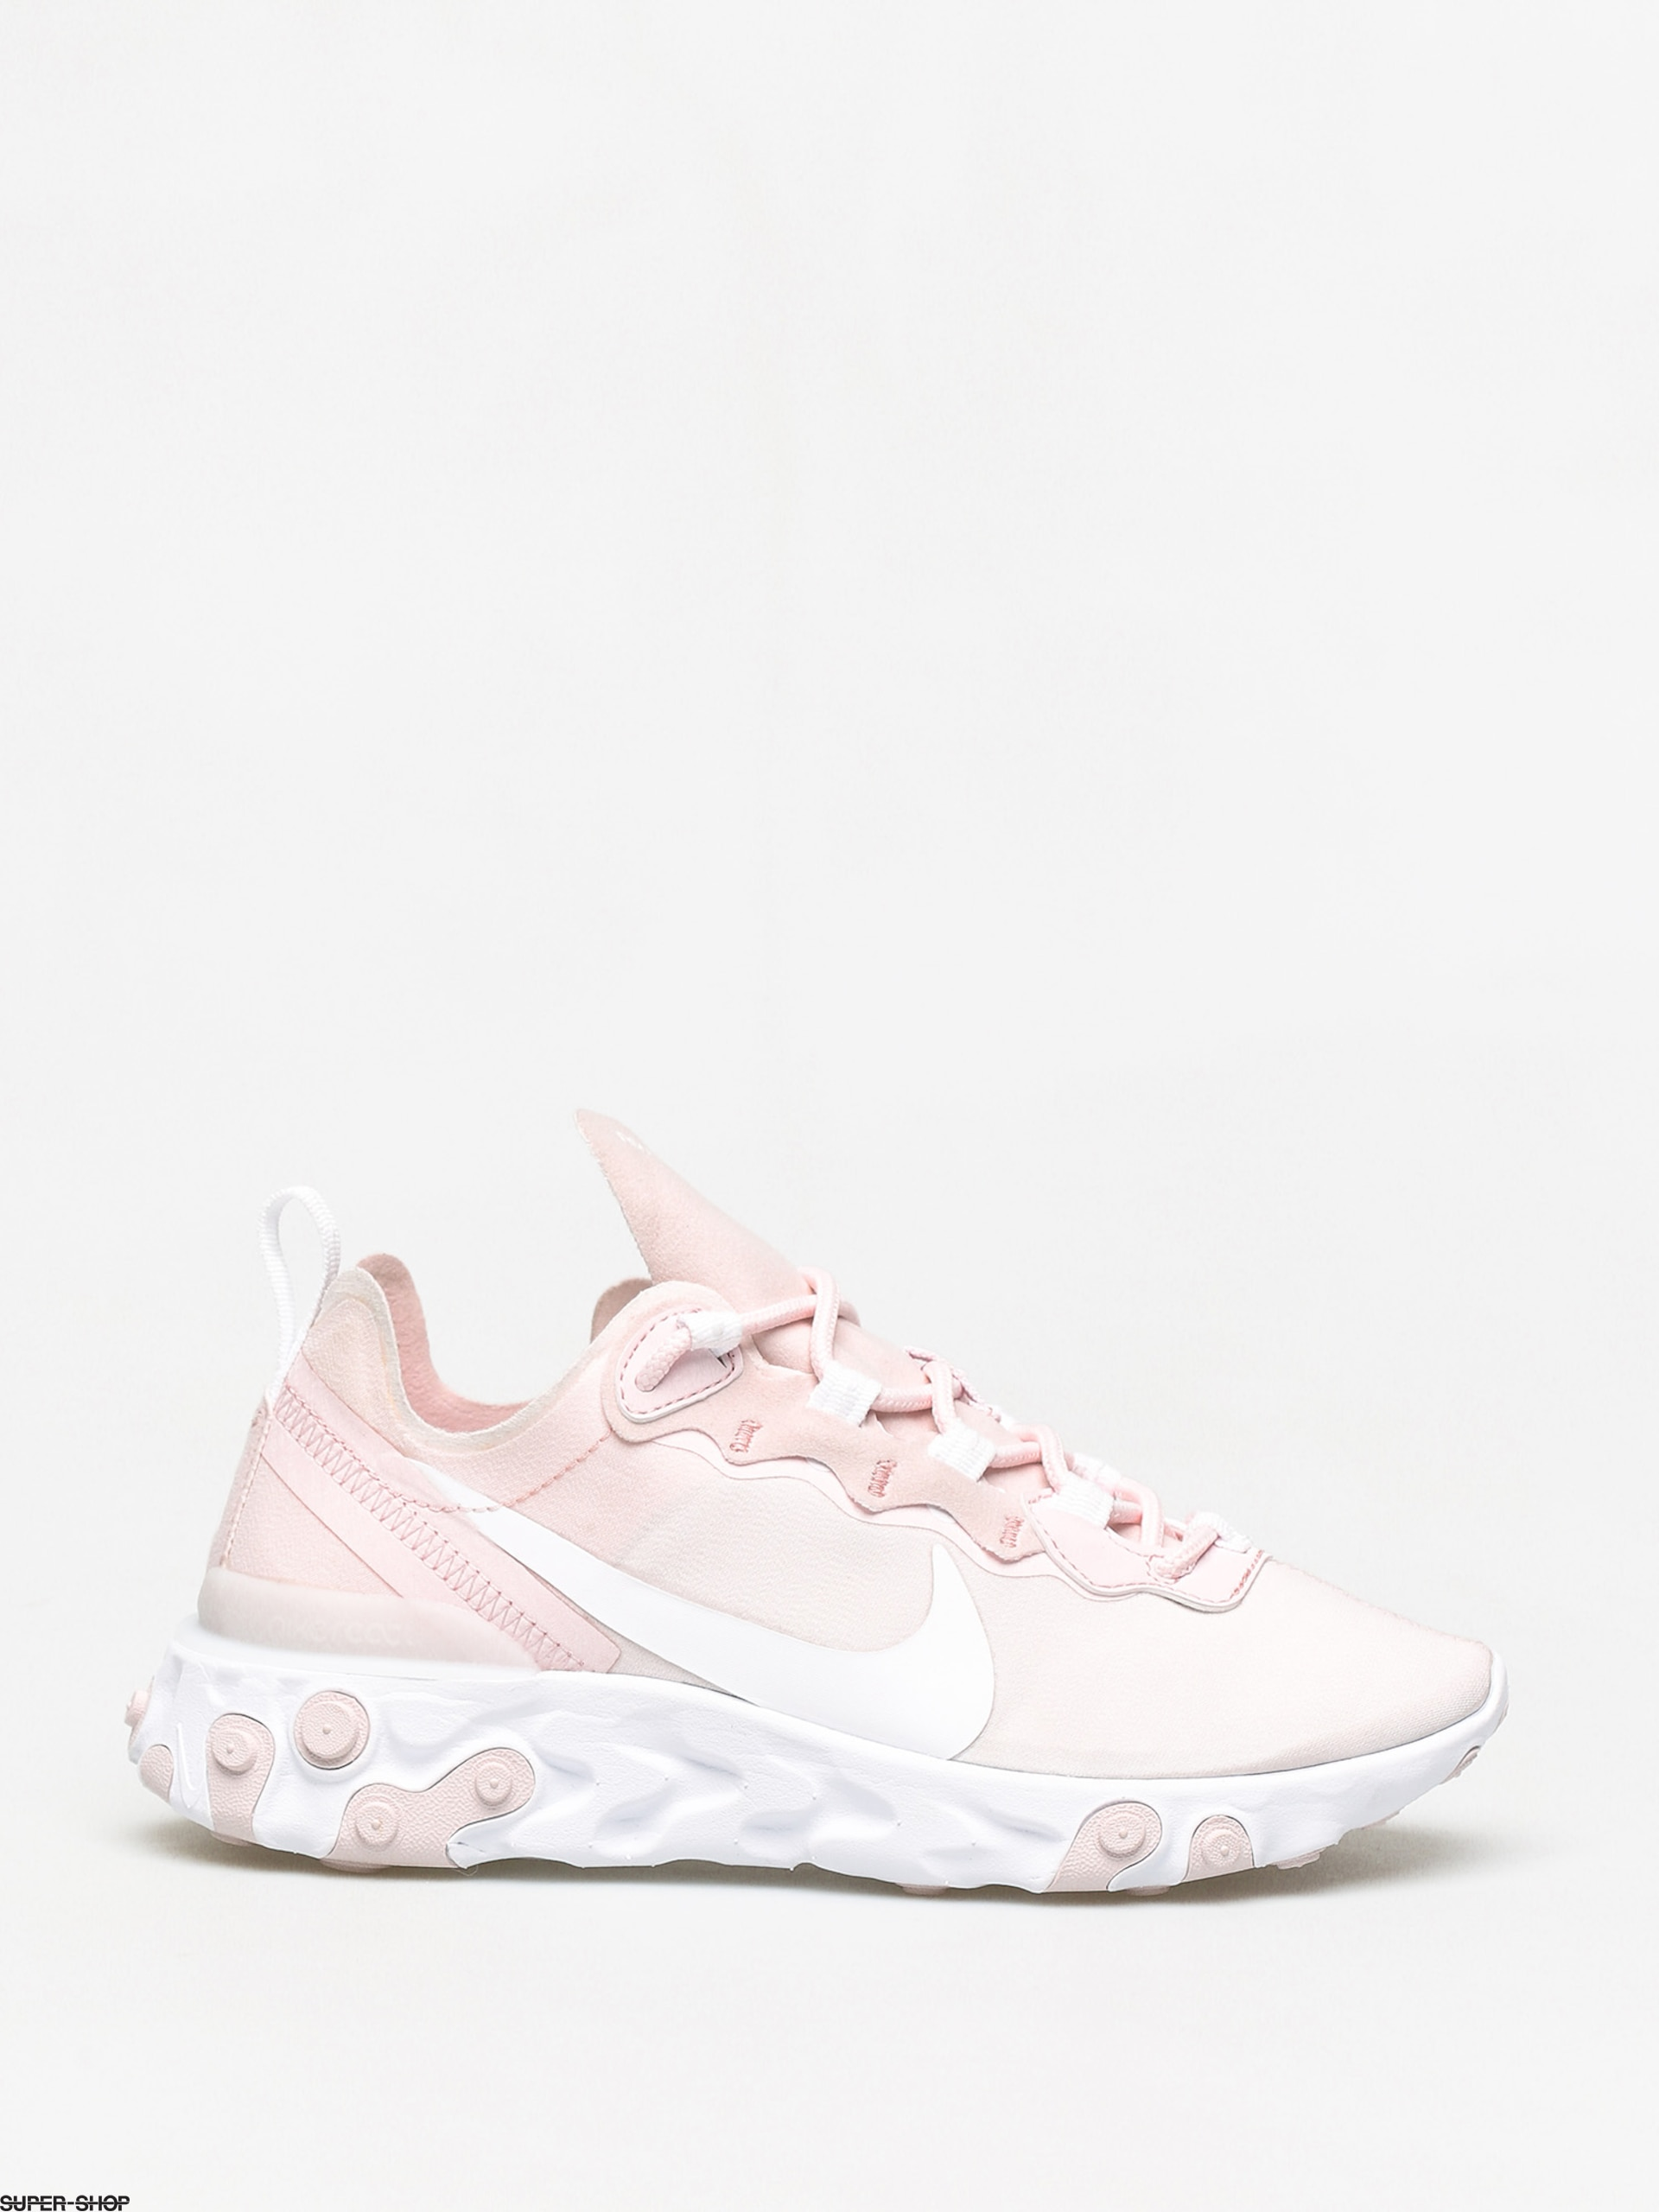 Nike React Element 55 Shoes Wmn (pale pinkwhite white pale pink)